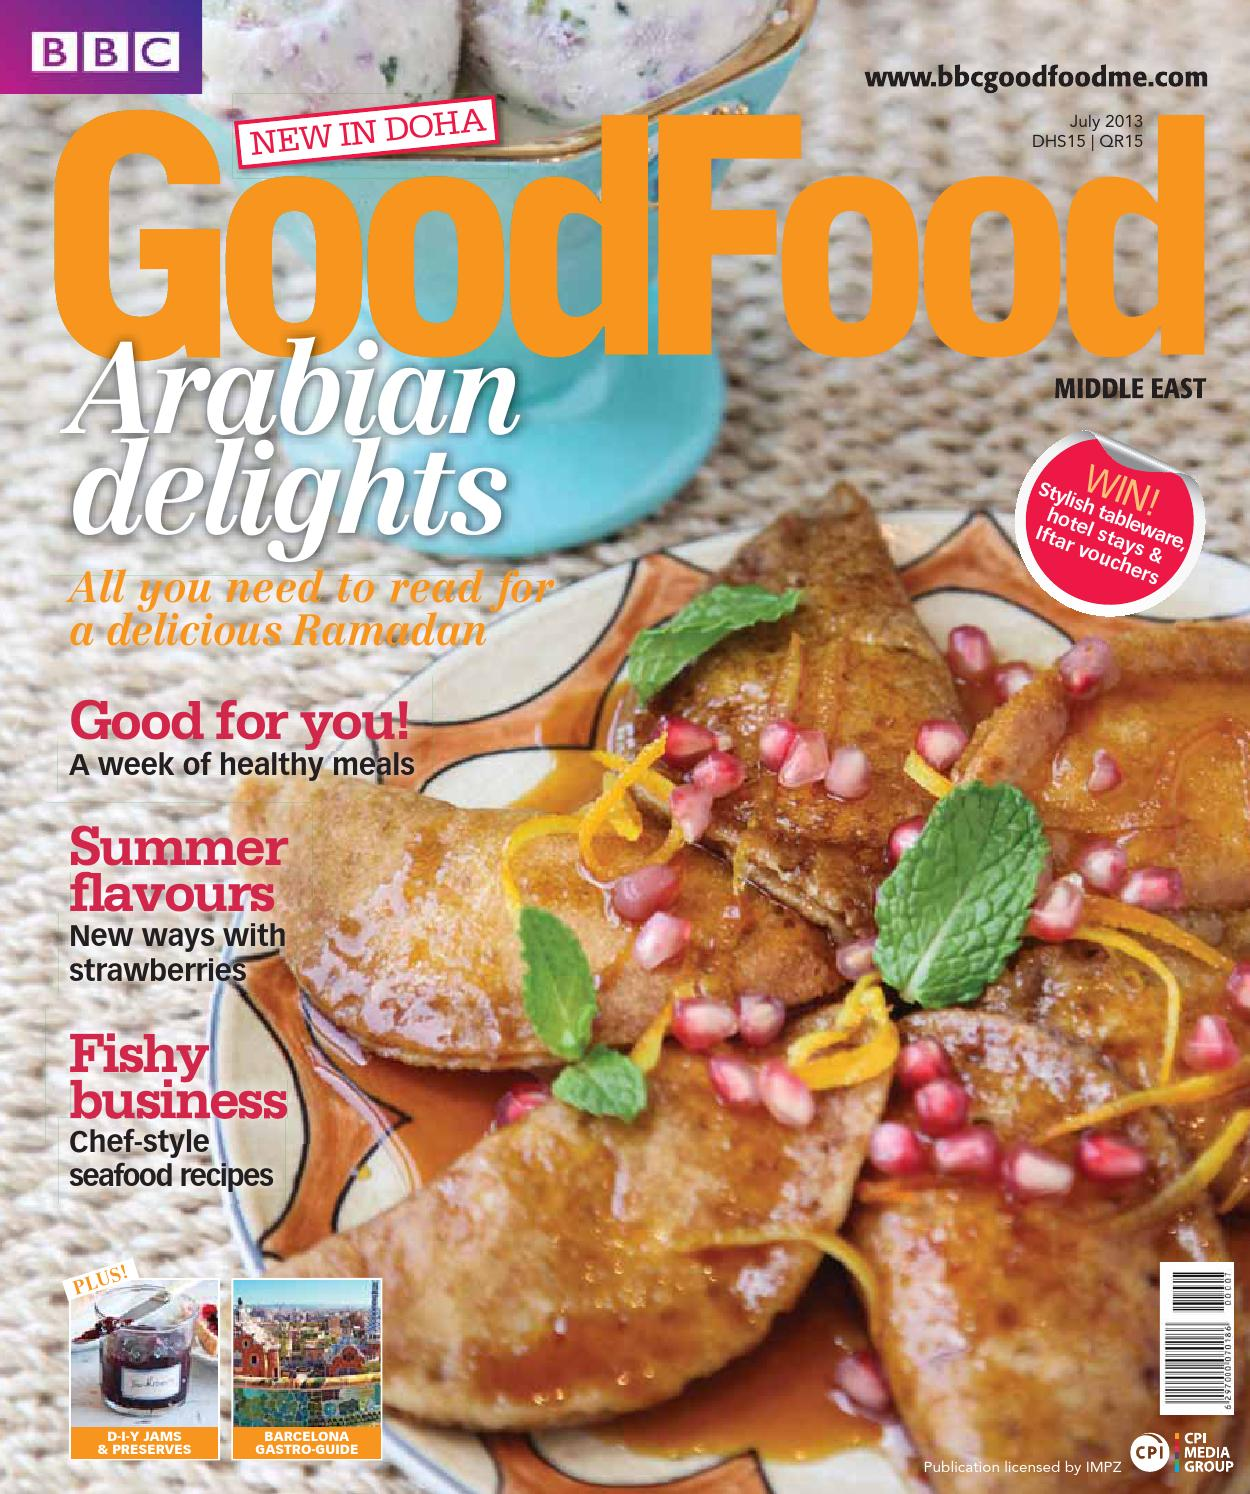 Bbc good food me 2013 july by bbc good food me issuu forumfinder Choice Image